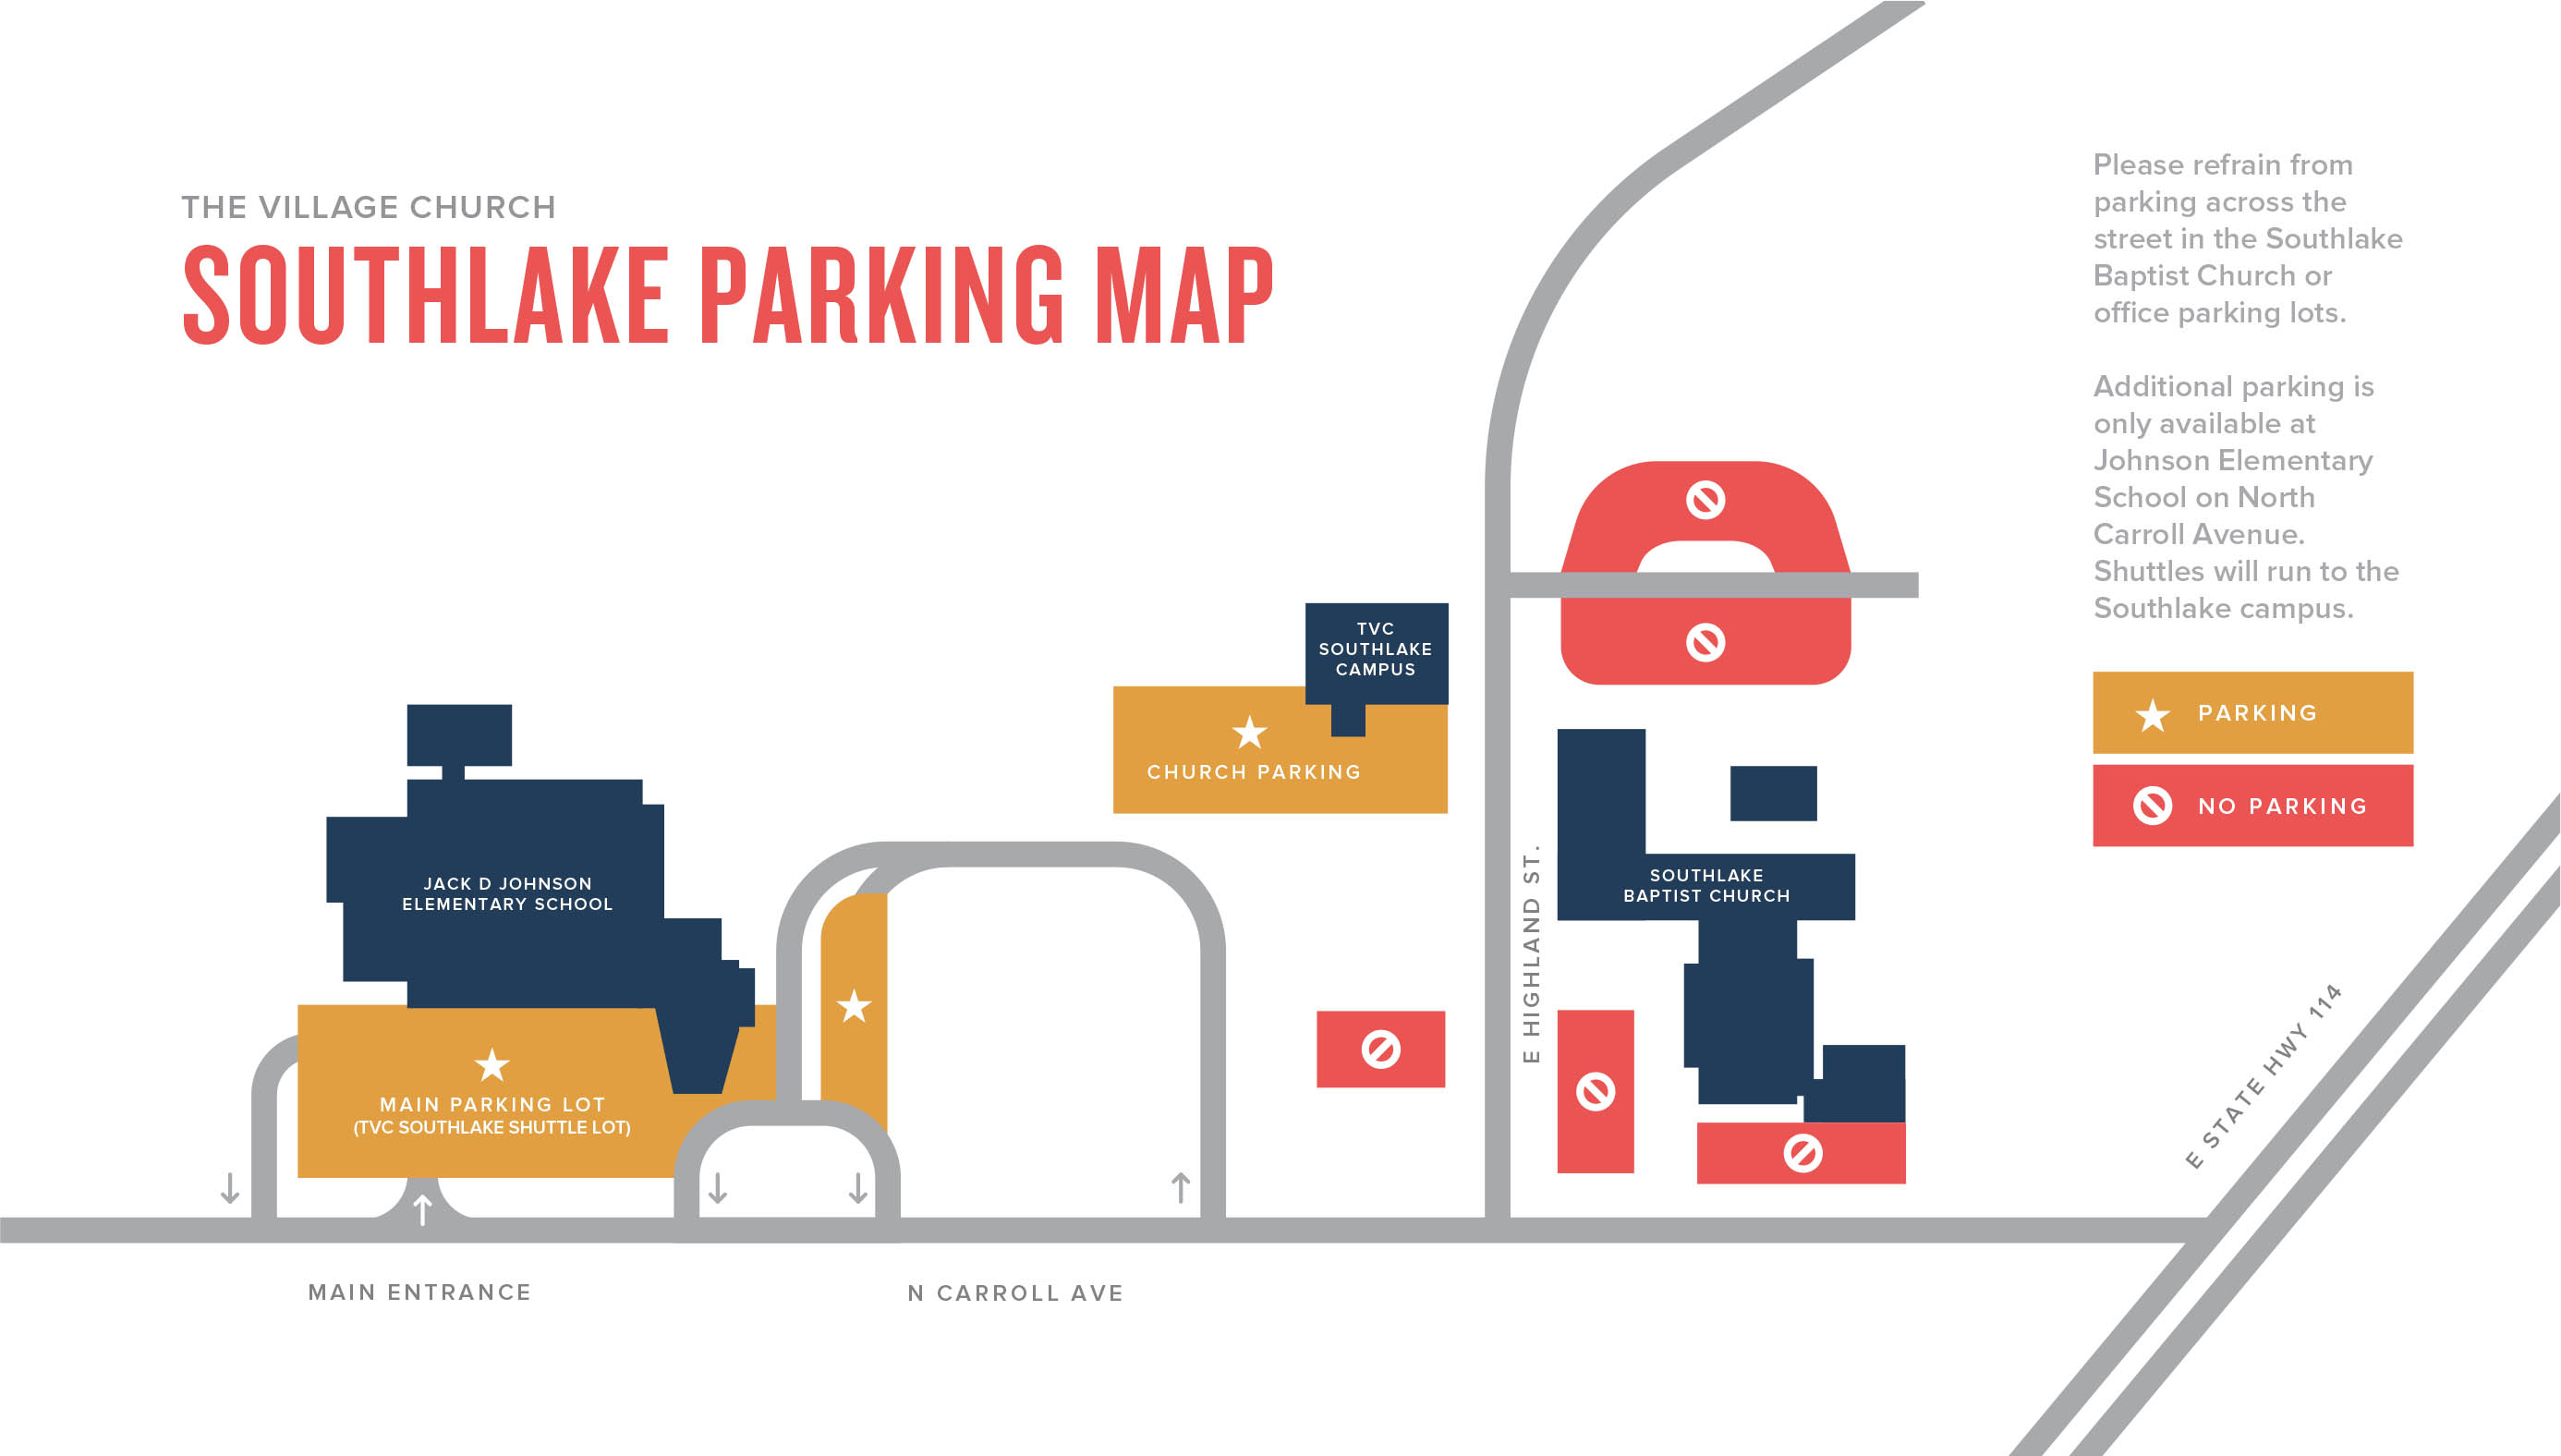 southlake-campus-parking-map.jpg